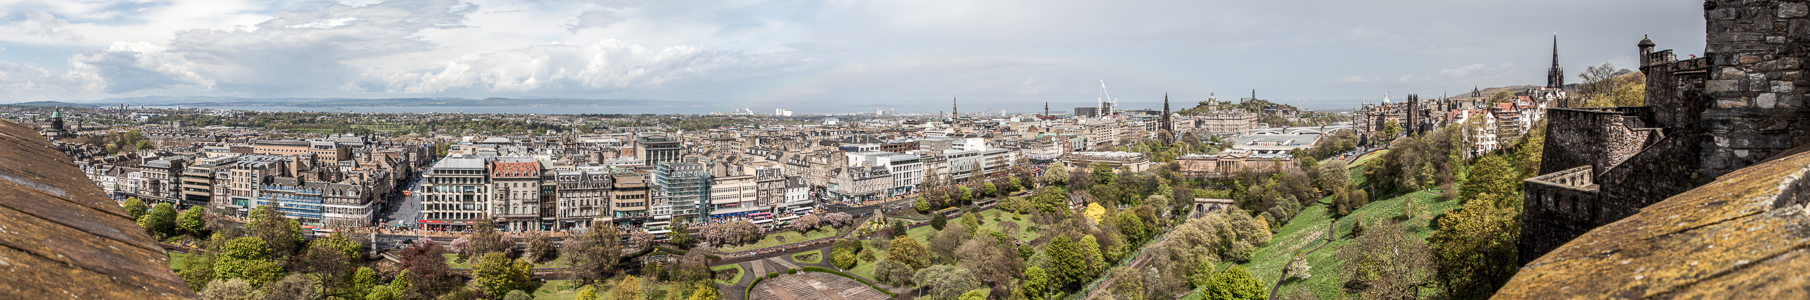 Blick von Edinburgh Castle: New Town Calton Hill Firth of Forth Old Town Princes Street Gardens